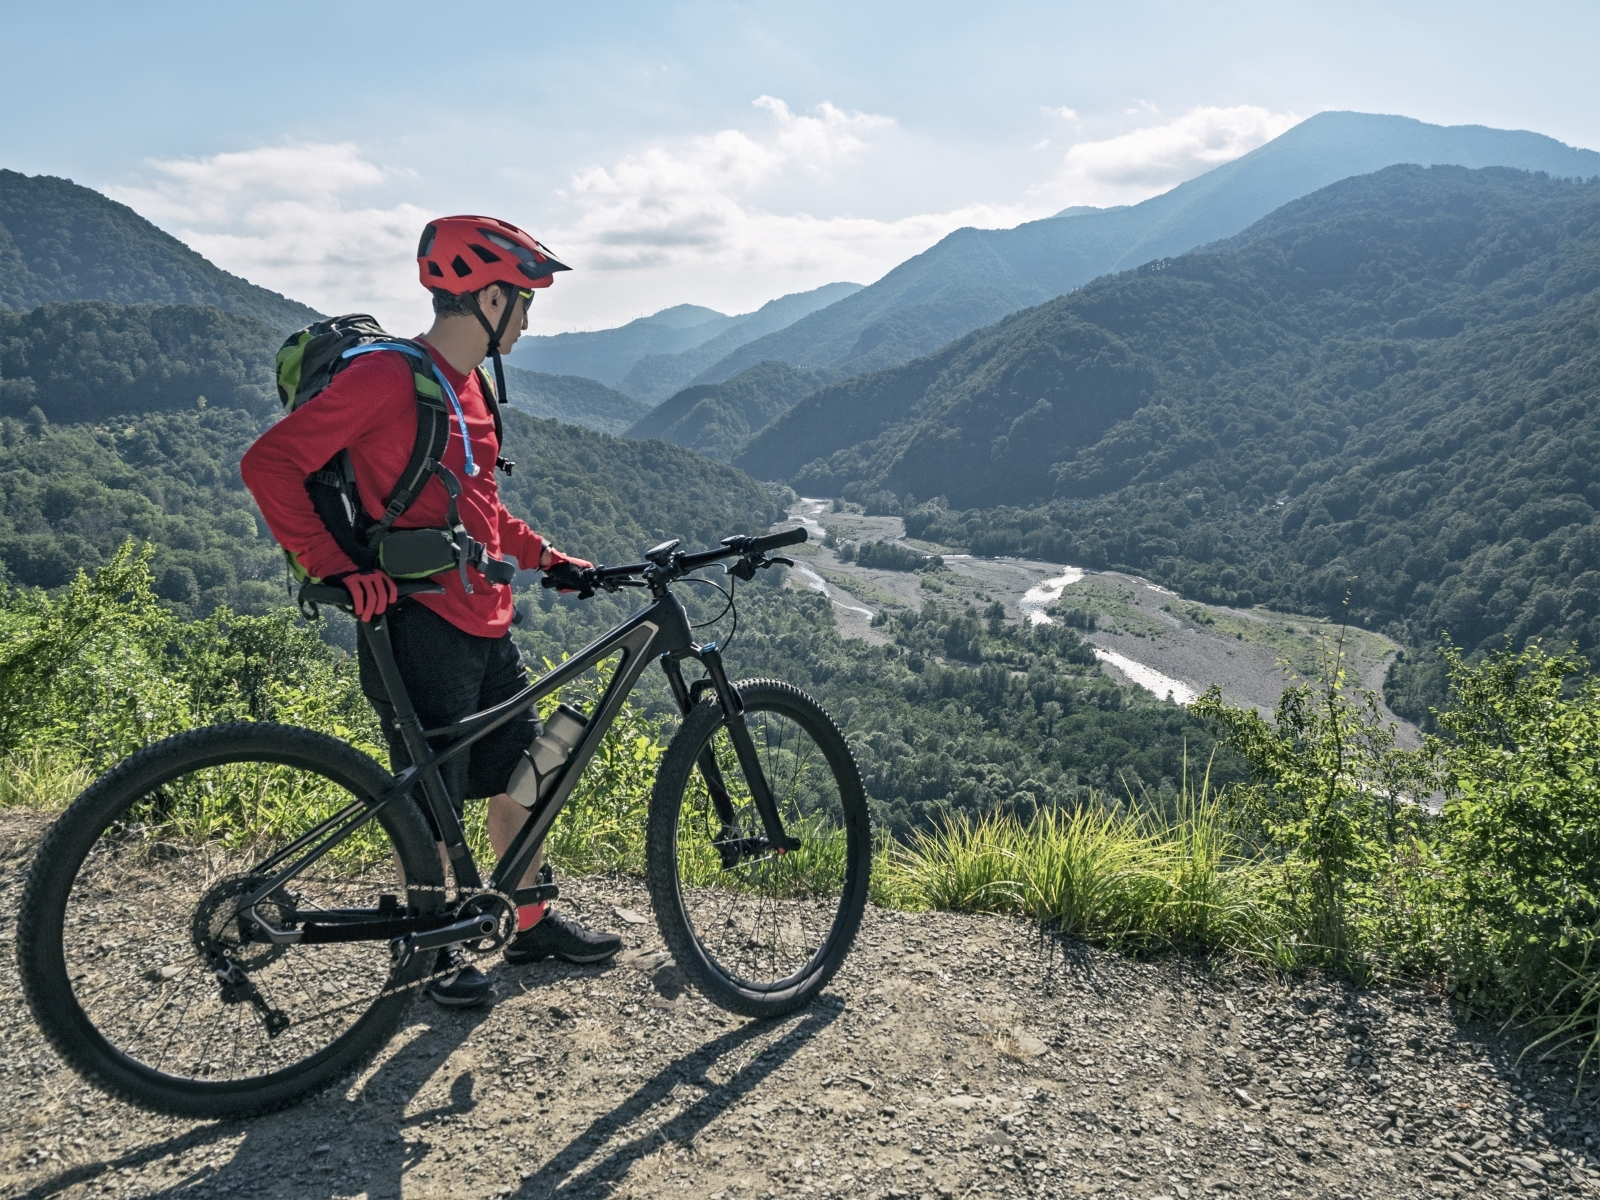 hydration bladder: Man looking down at the view after riding his mountain bike